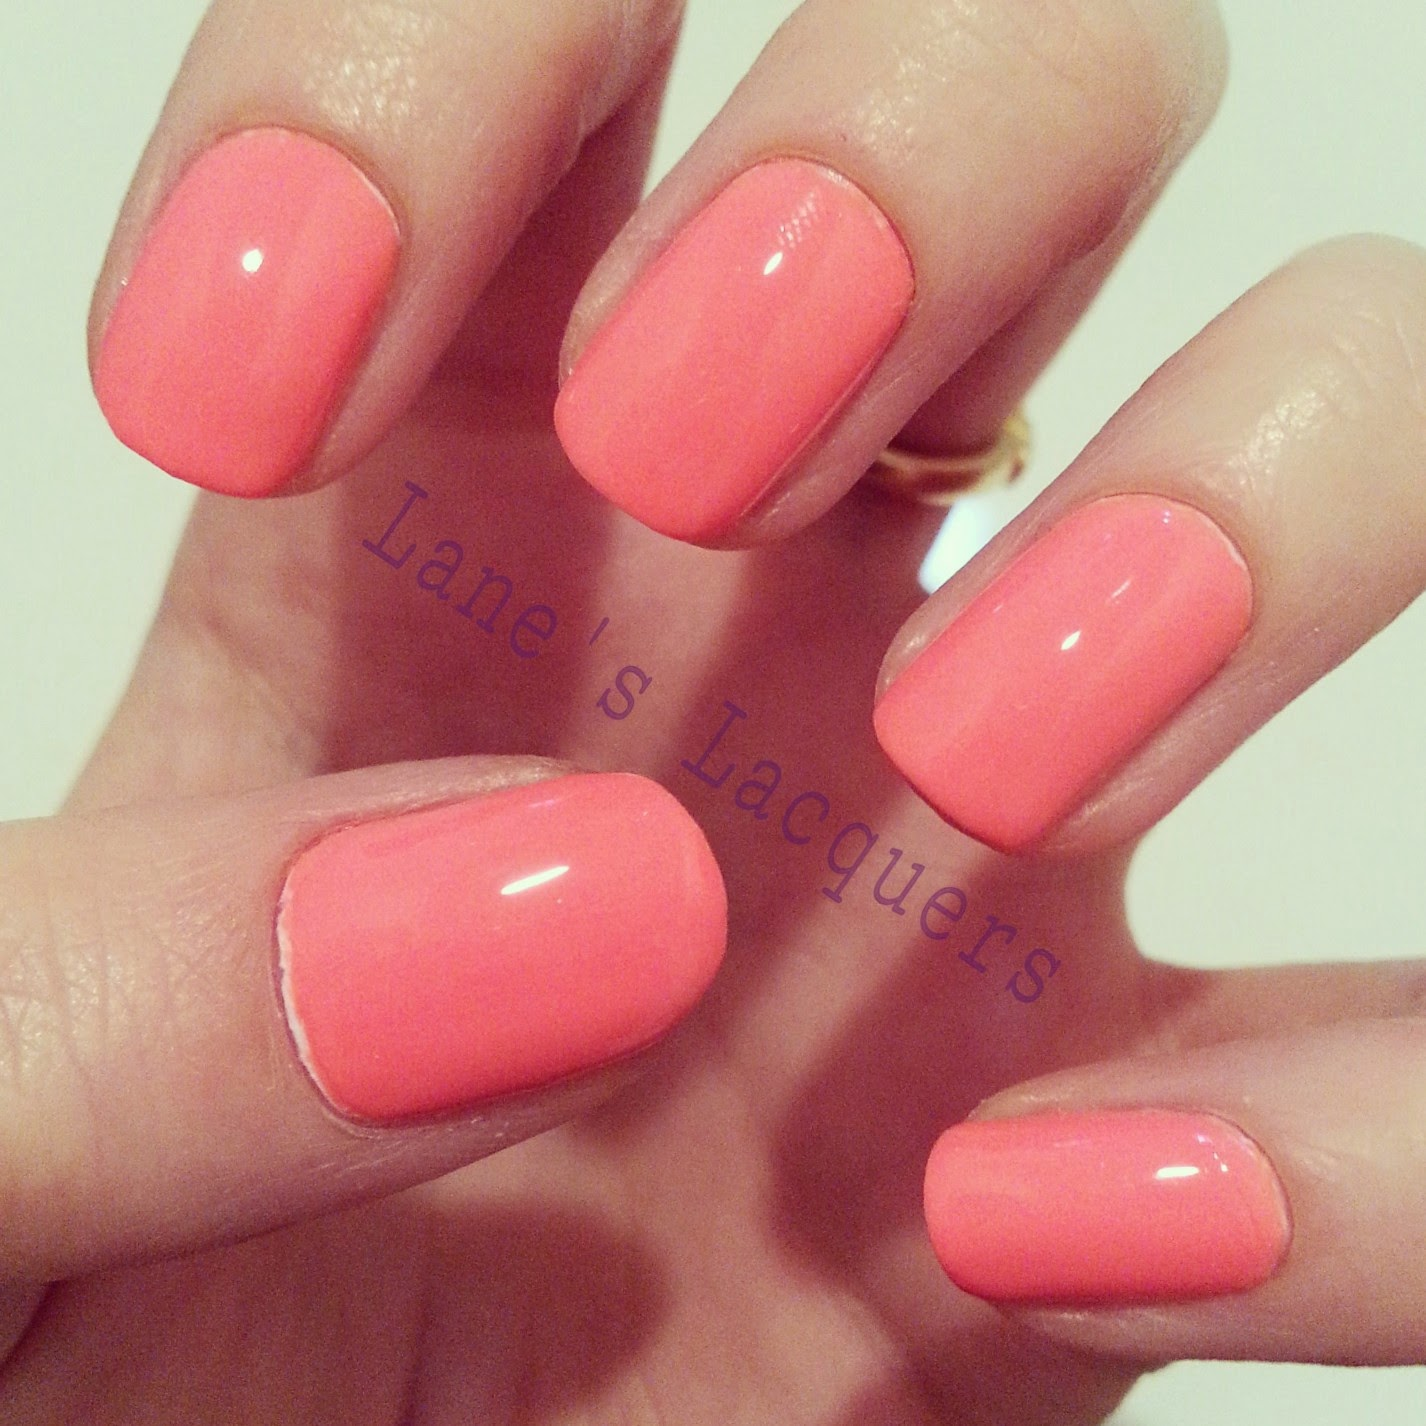 models-own-polish-for-tans-shades-swatch